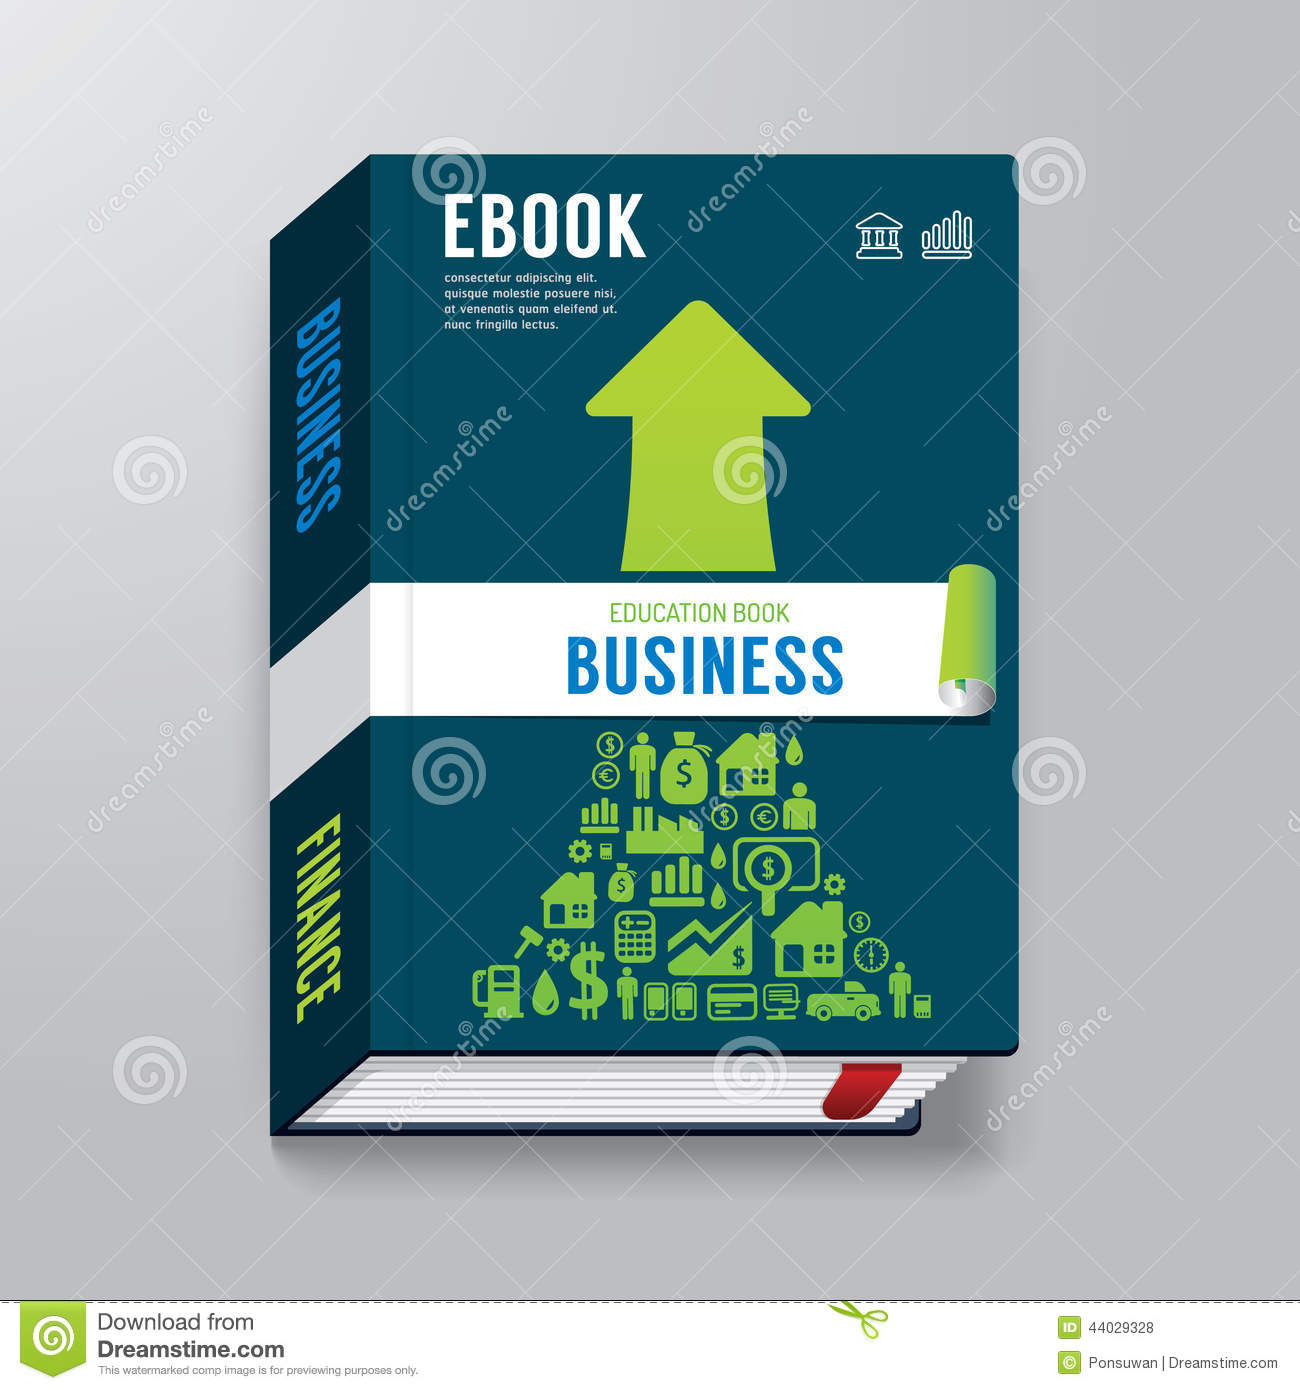 Book Cover Design Template Vector Illustration Free Download ~ Book cover business design template e stock vector